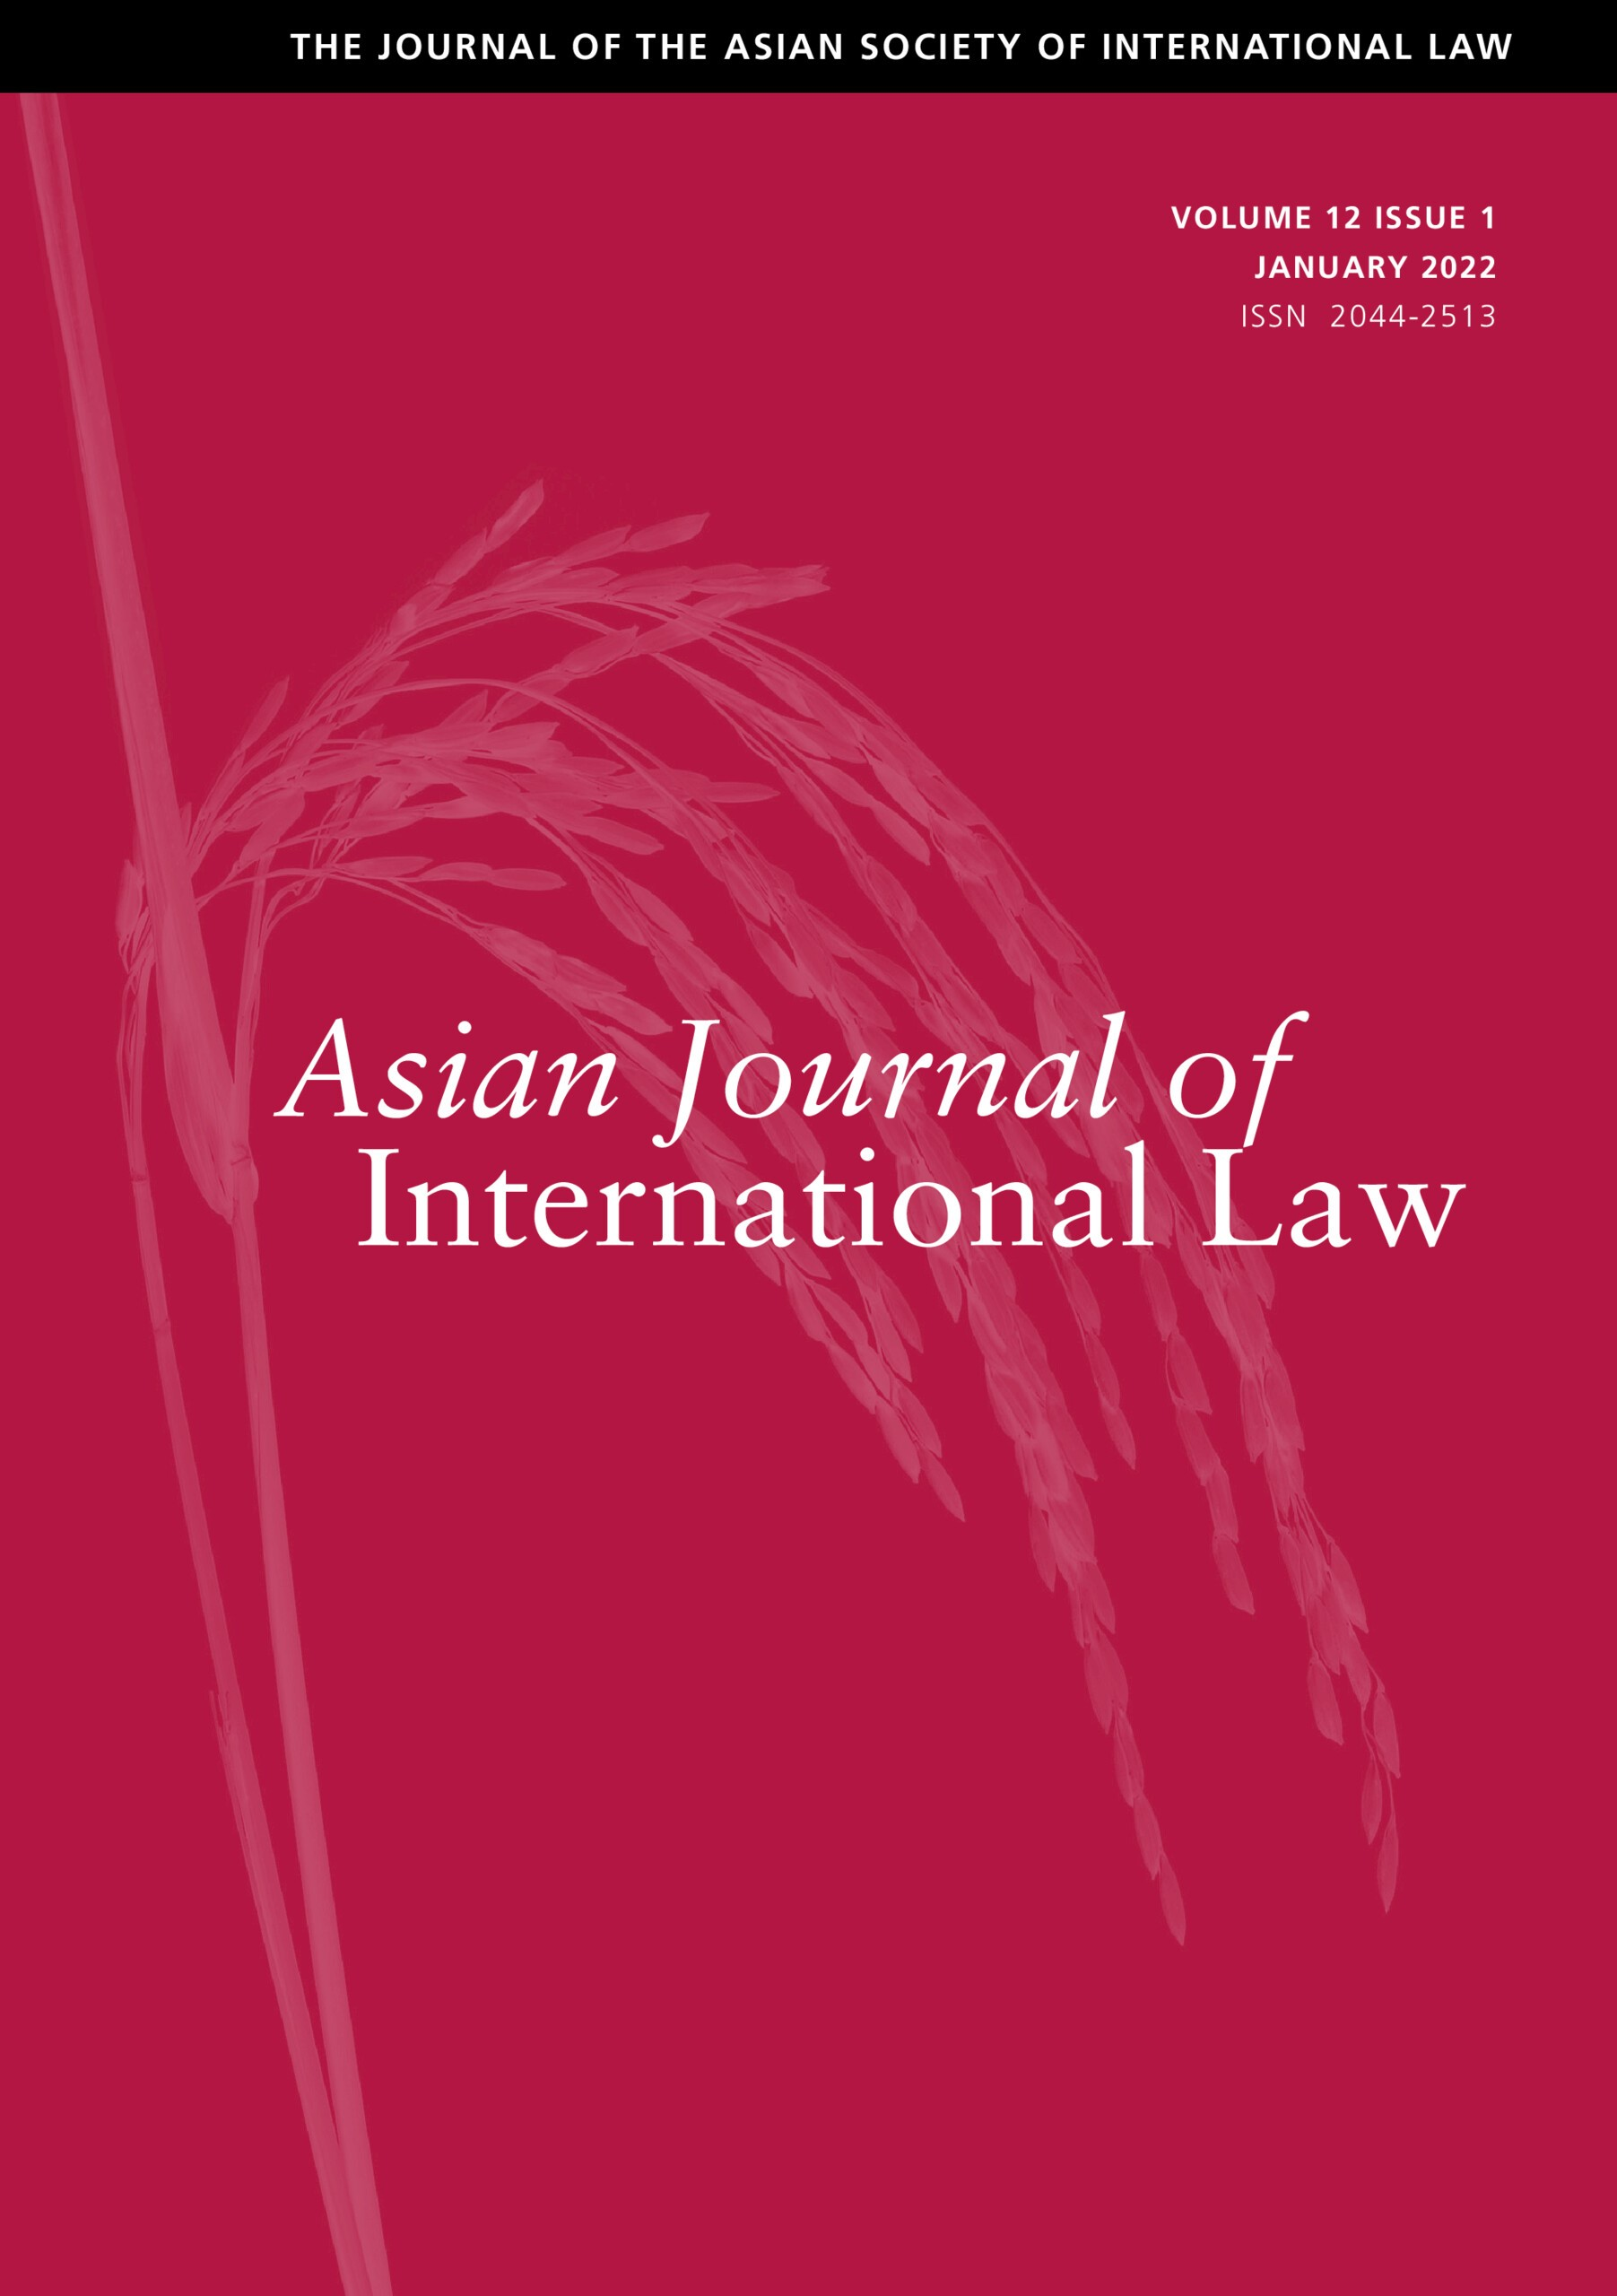 Asian Journal of International Law